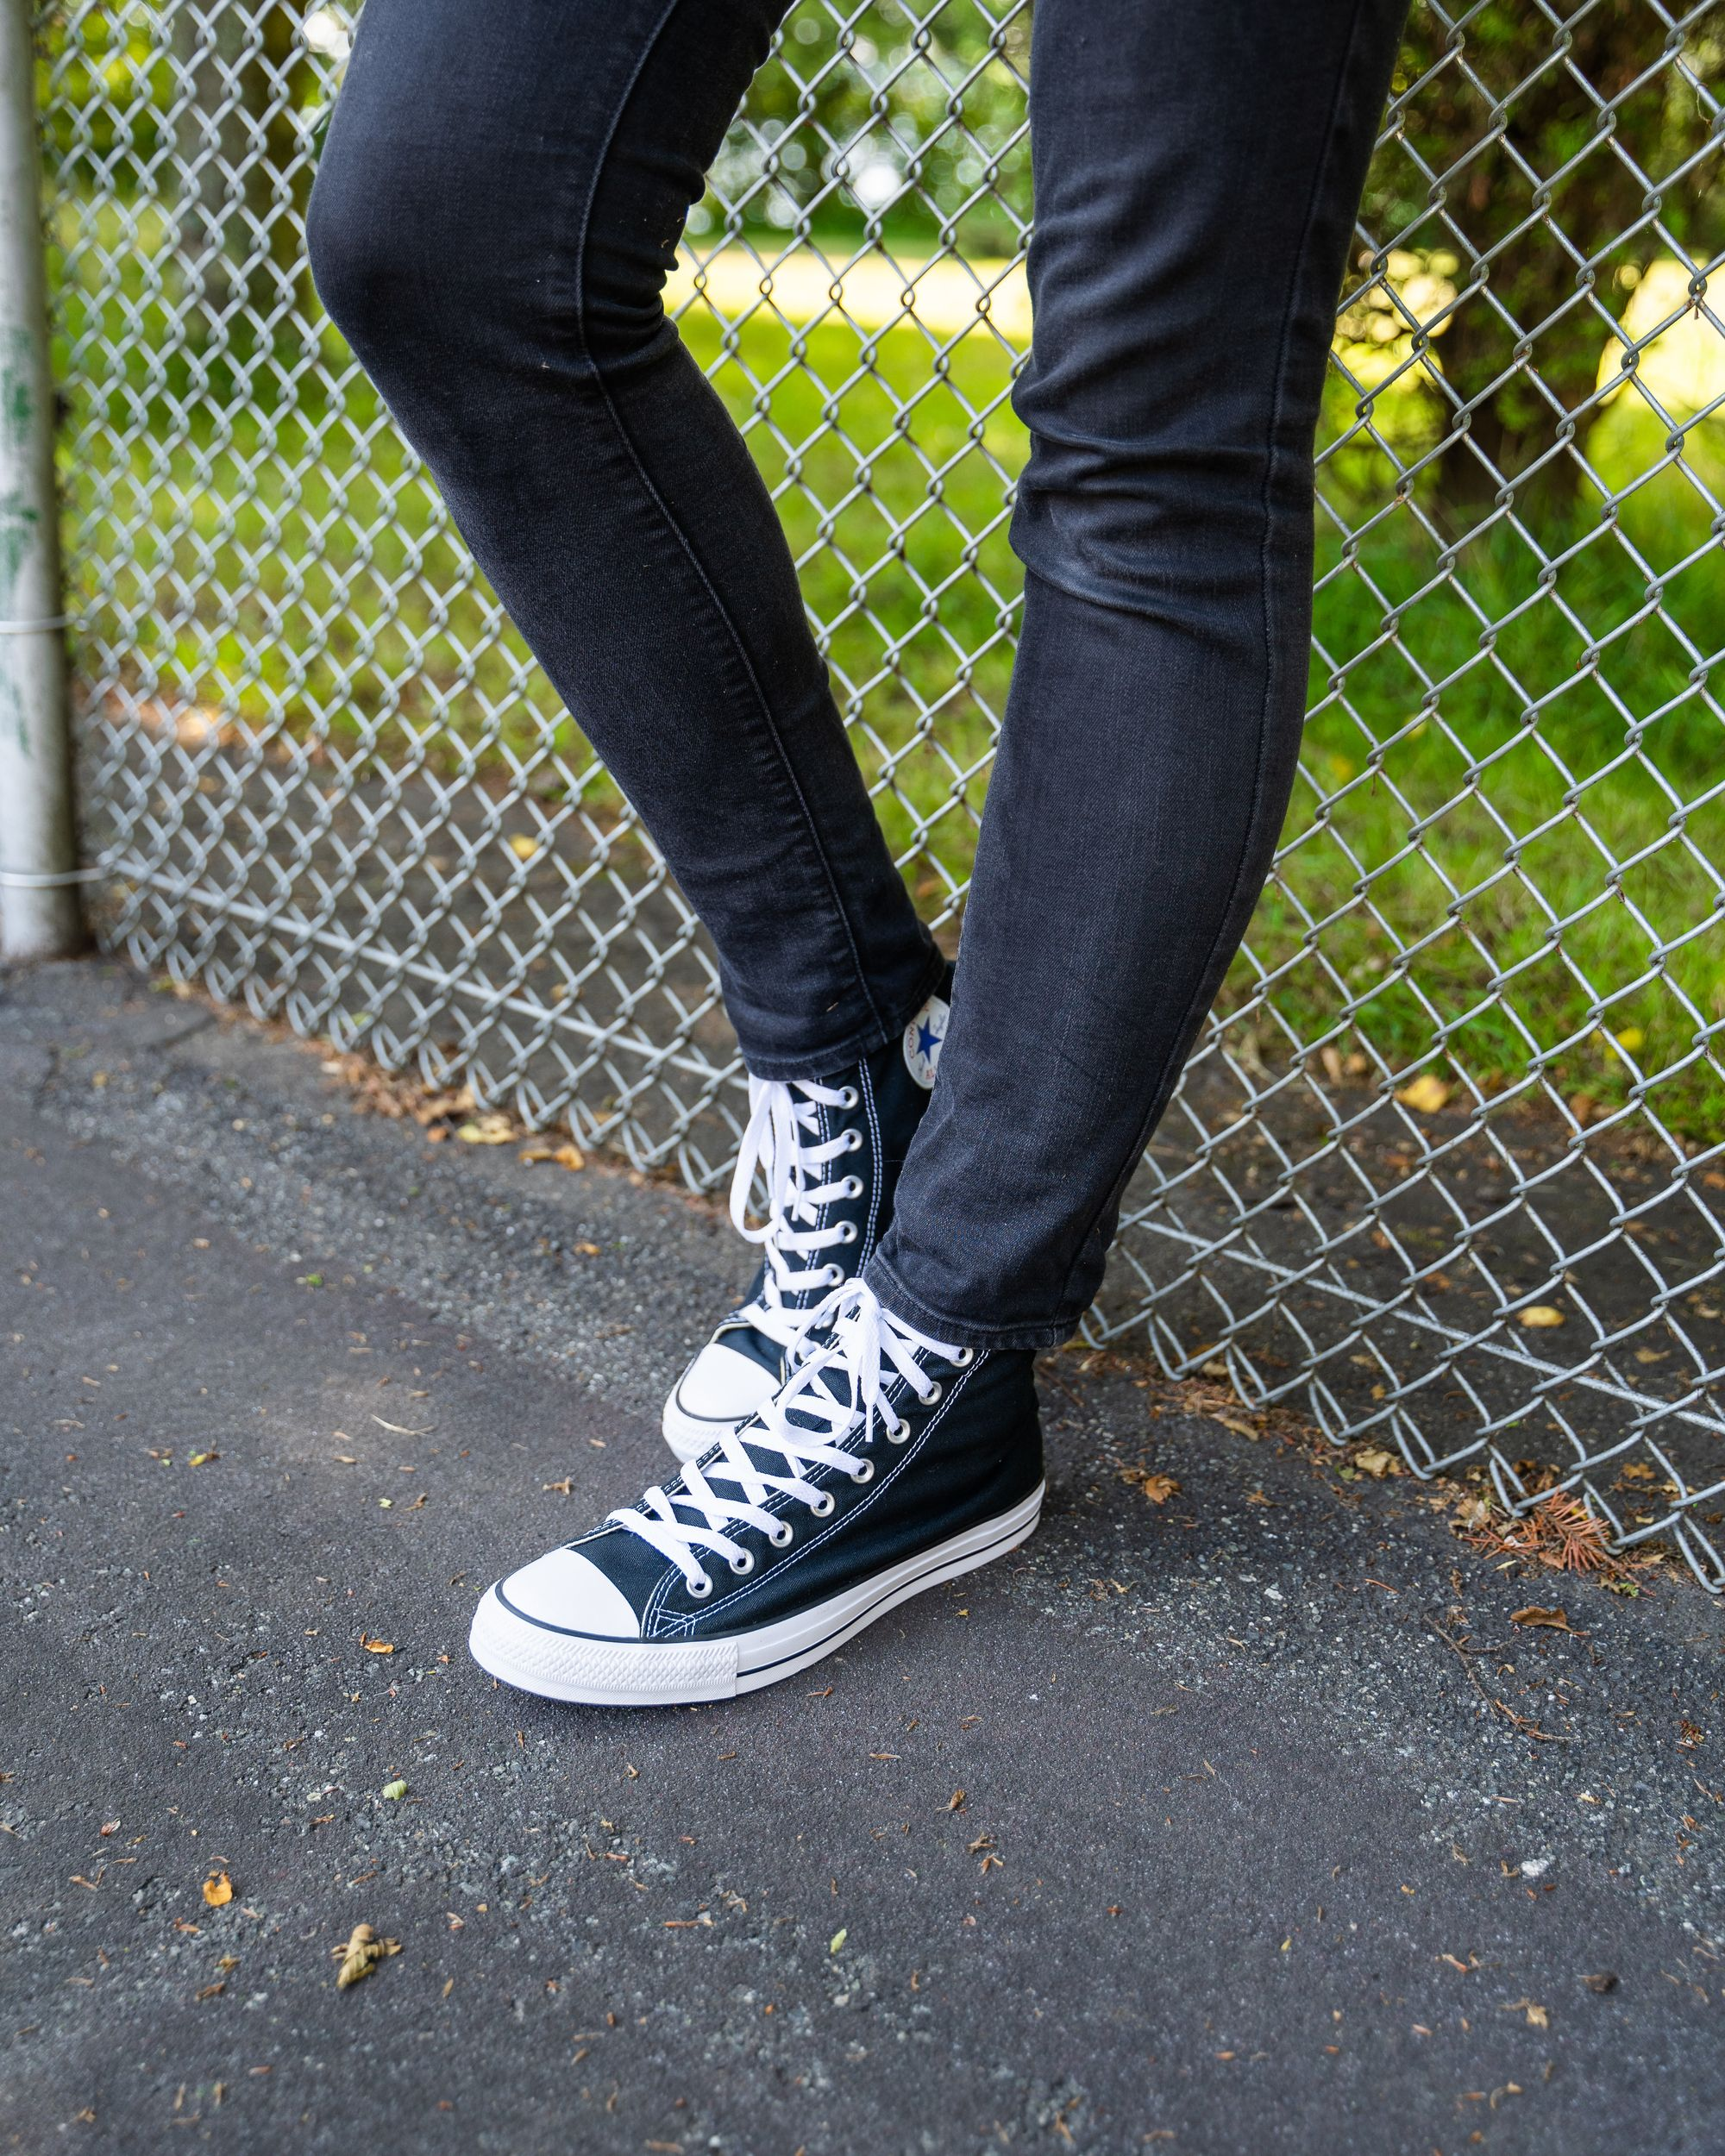 The classic of all classics: Converse Chuck Taylor All Star